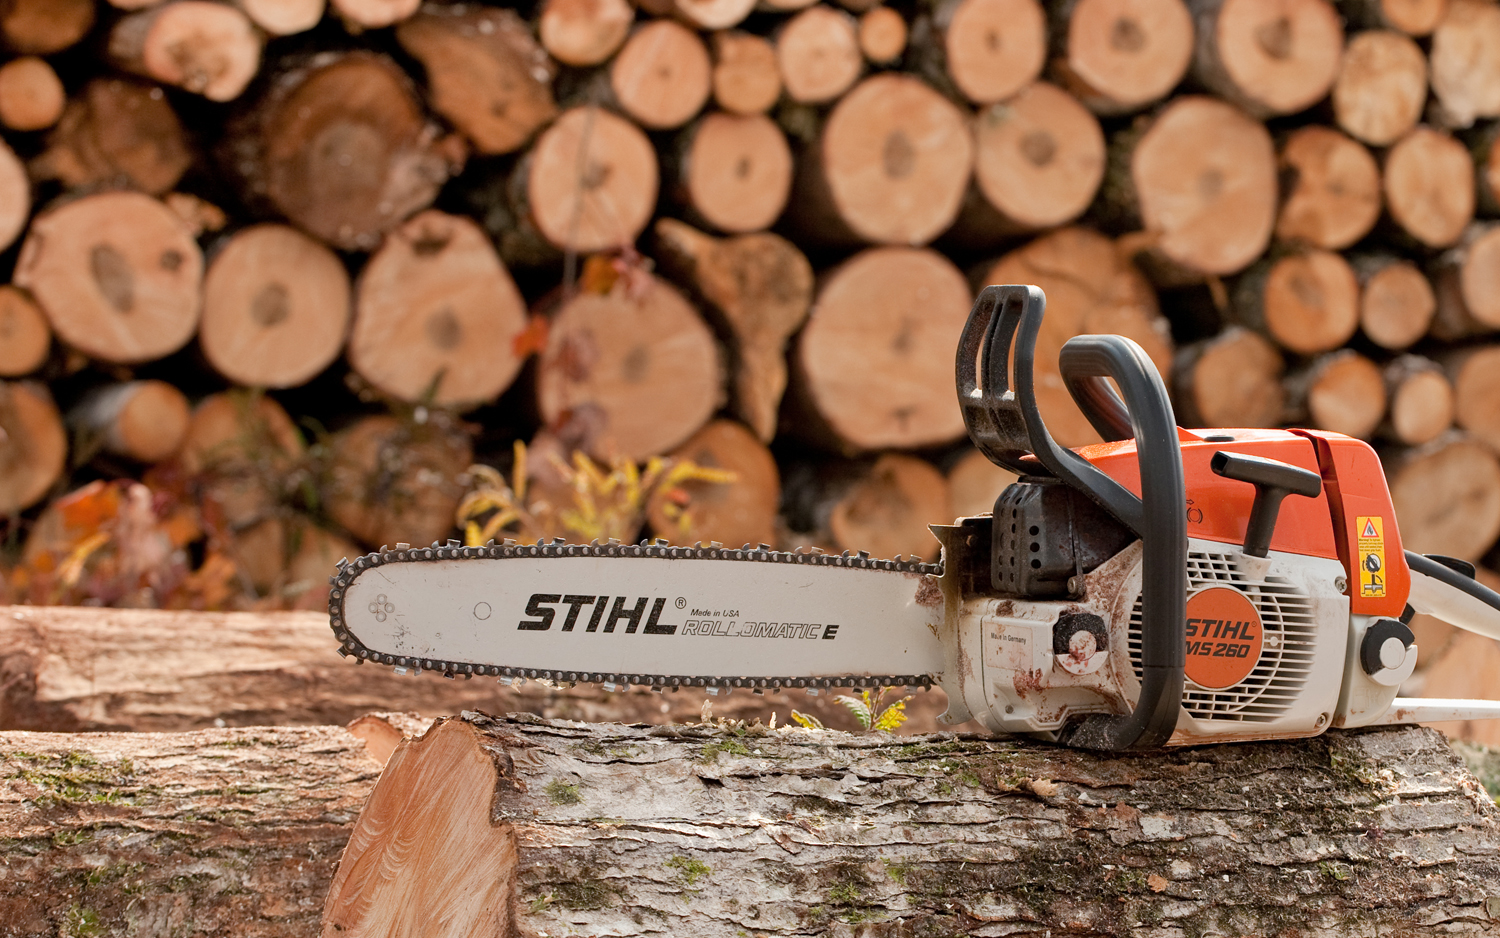 Best STIHL Chainsaws 2019 - Electric, Gas, Battery-Powered Reviews